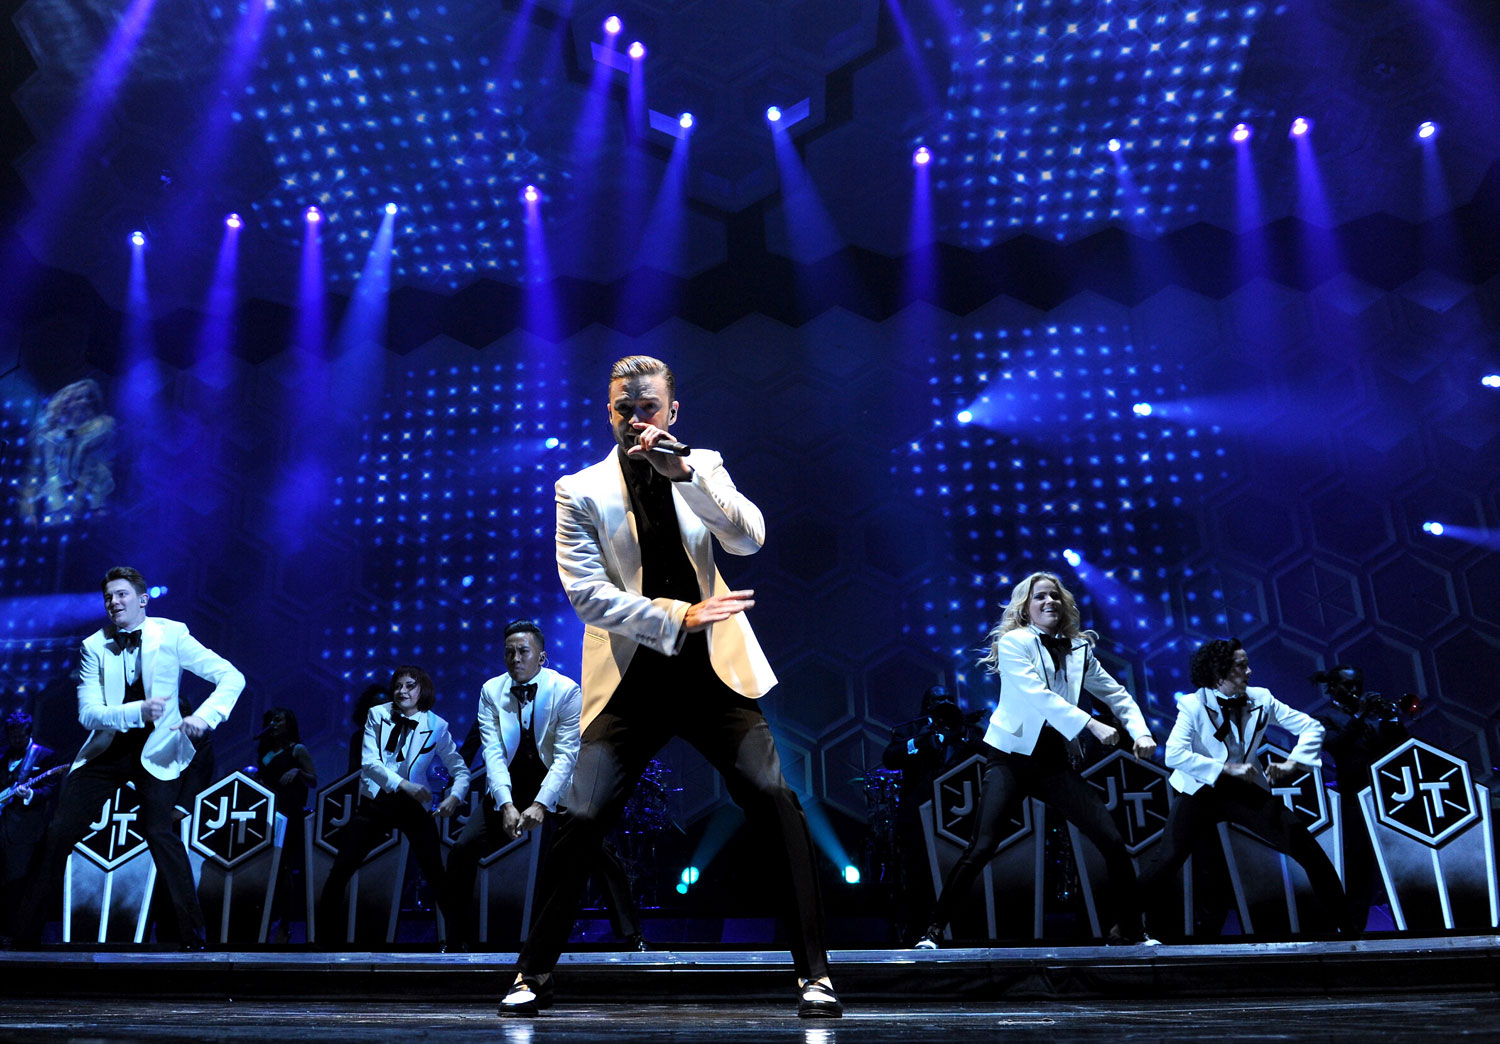 Justin timberlake performs onstage on the 20 20 experience world tour